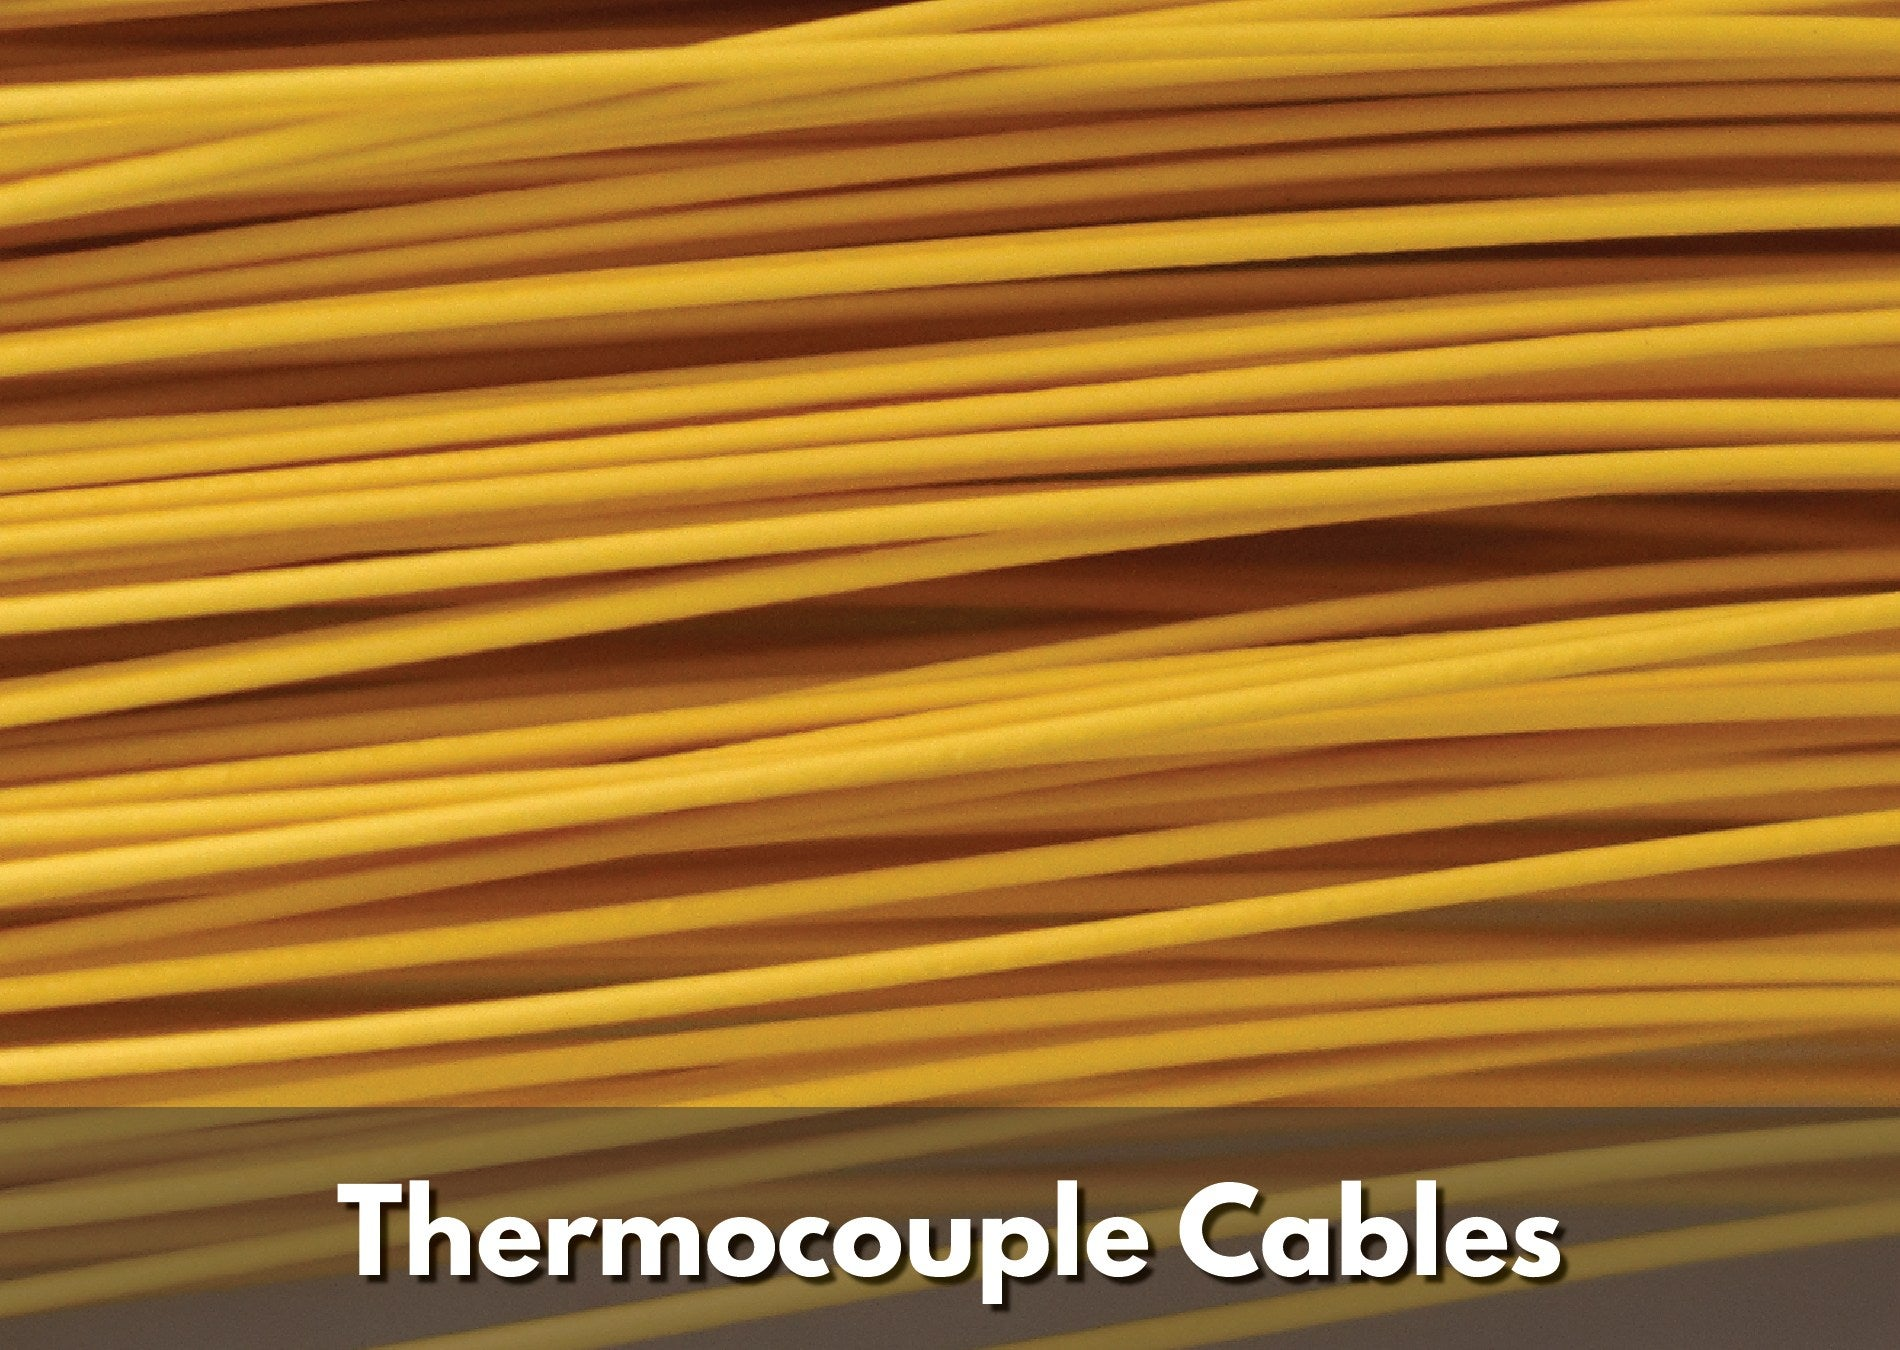 Texcan - View All Products - Thermocouple Cables.jpg